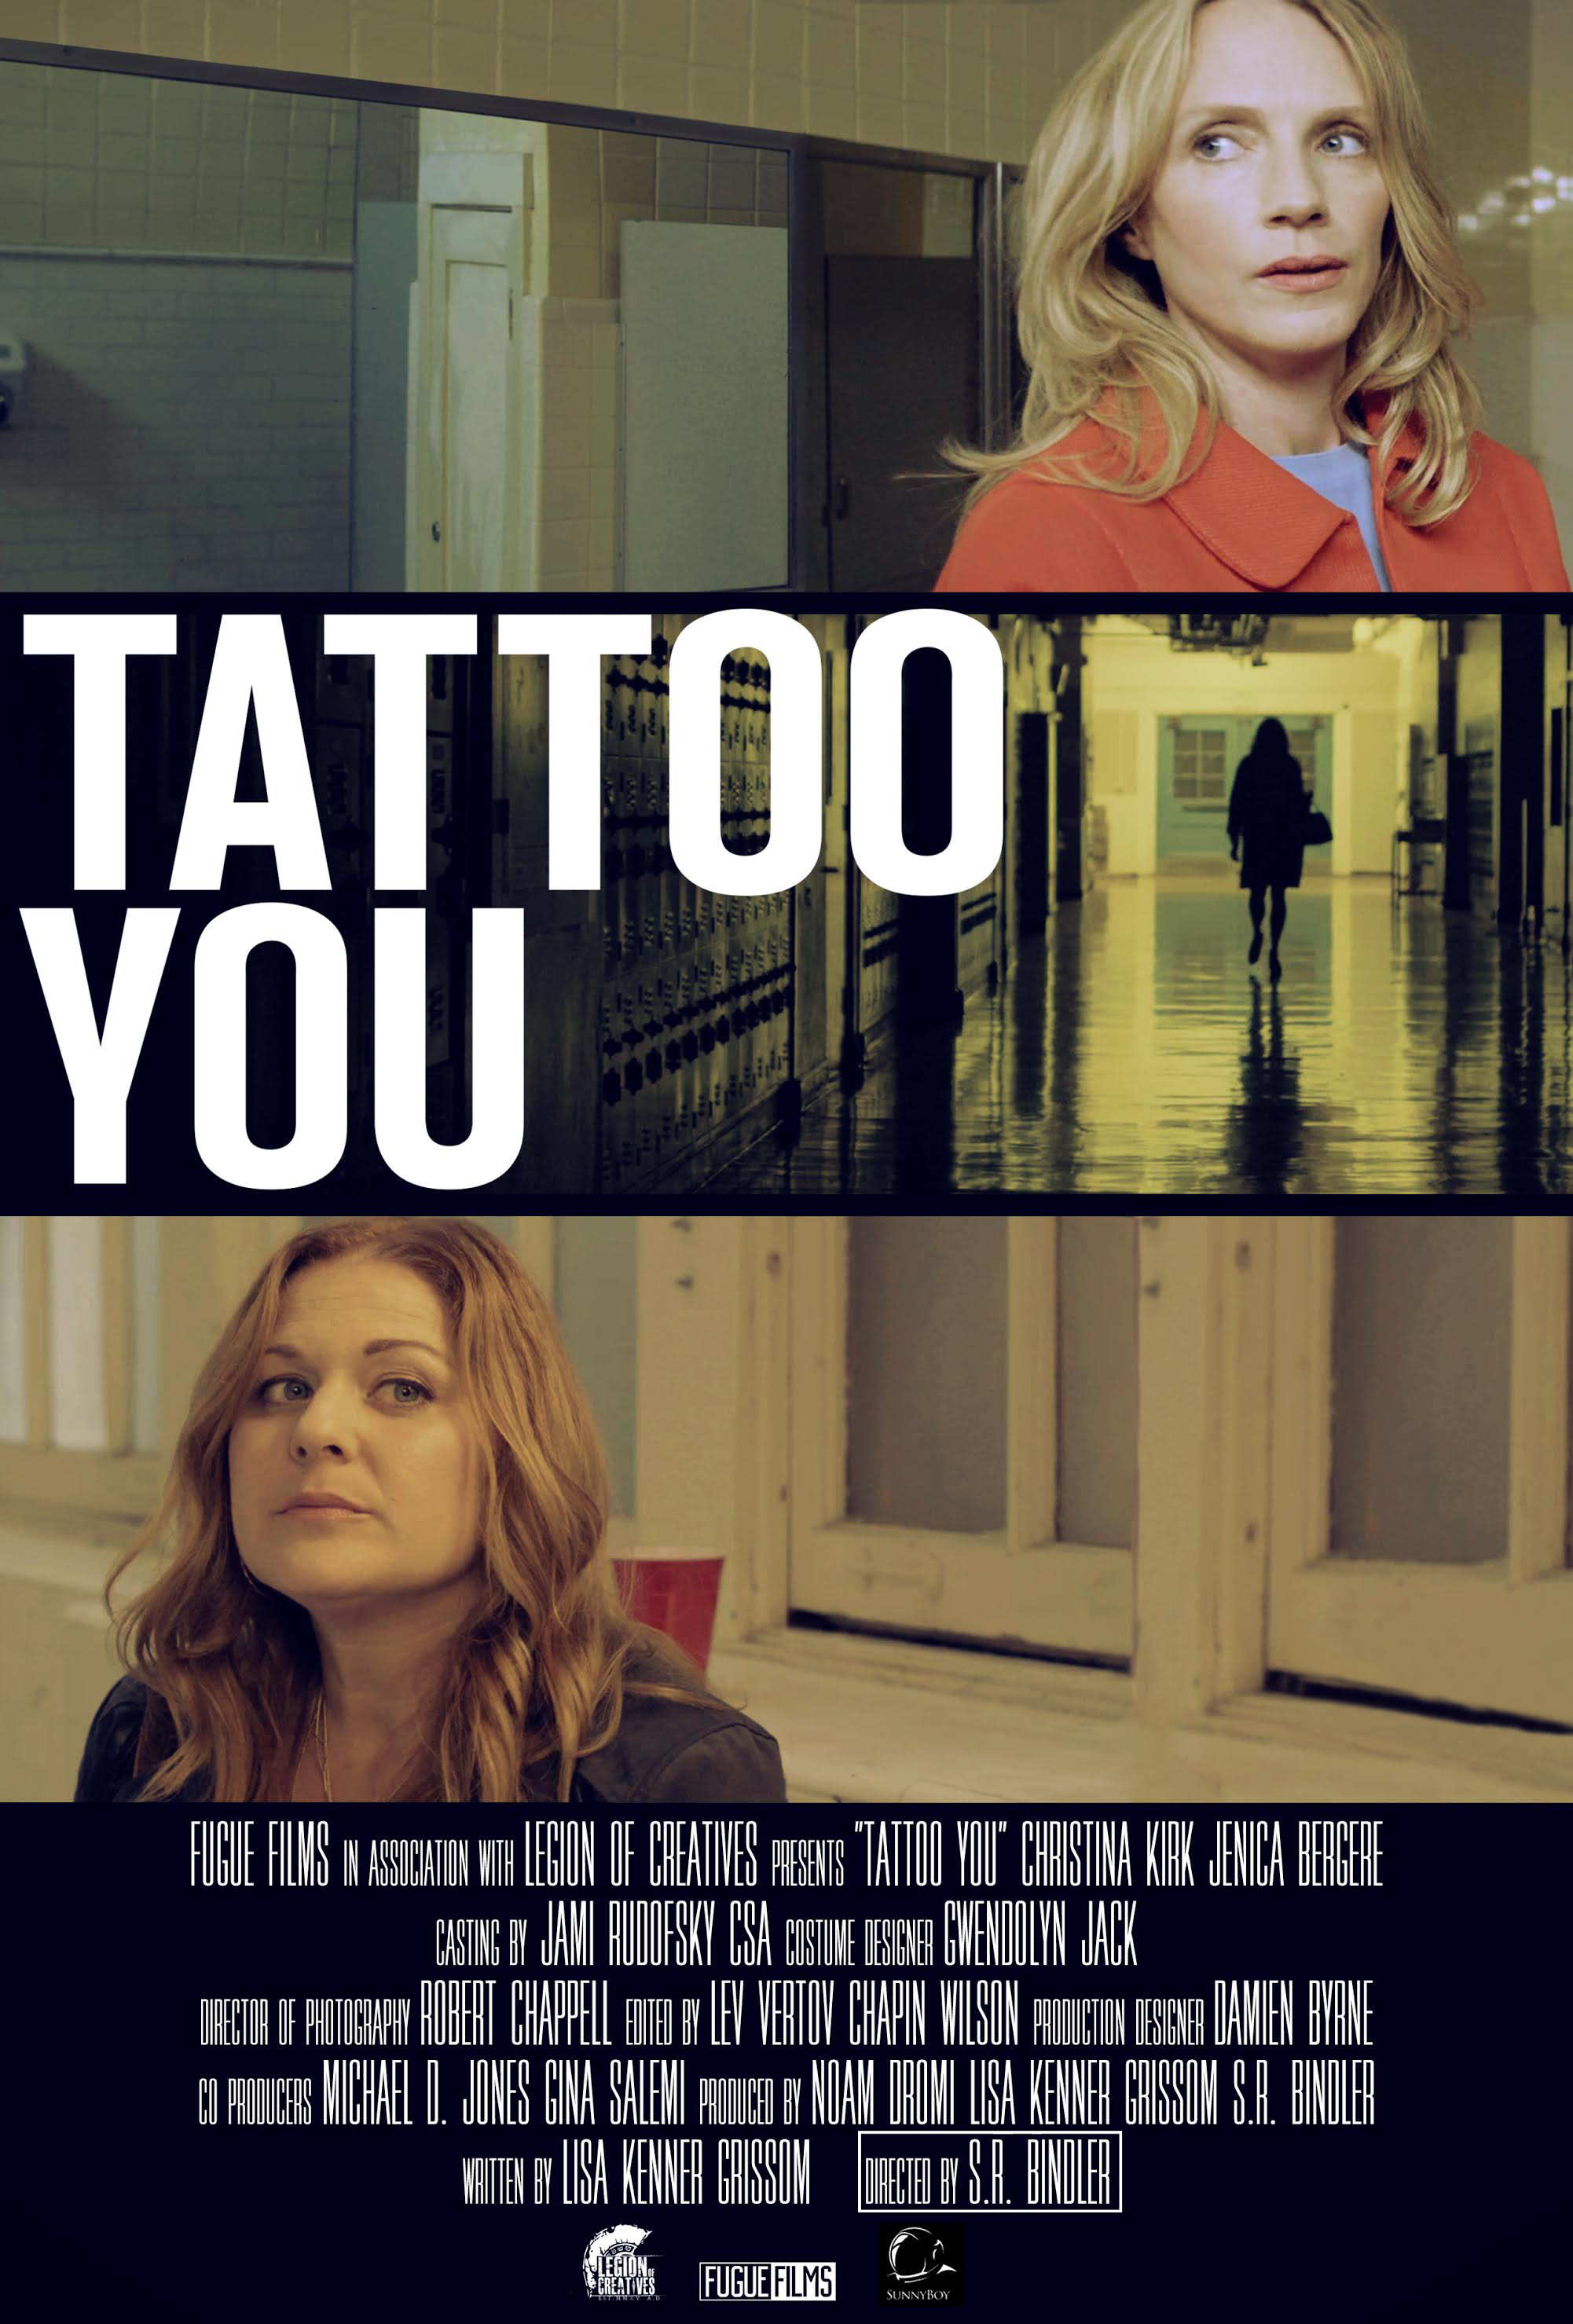 Tattoo You Poster CoriNologo.jpg